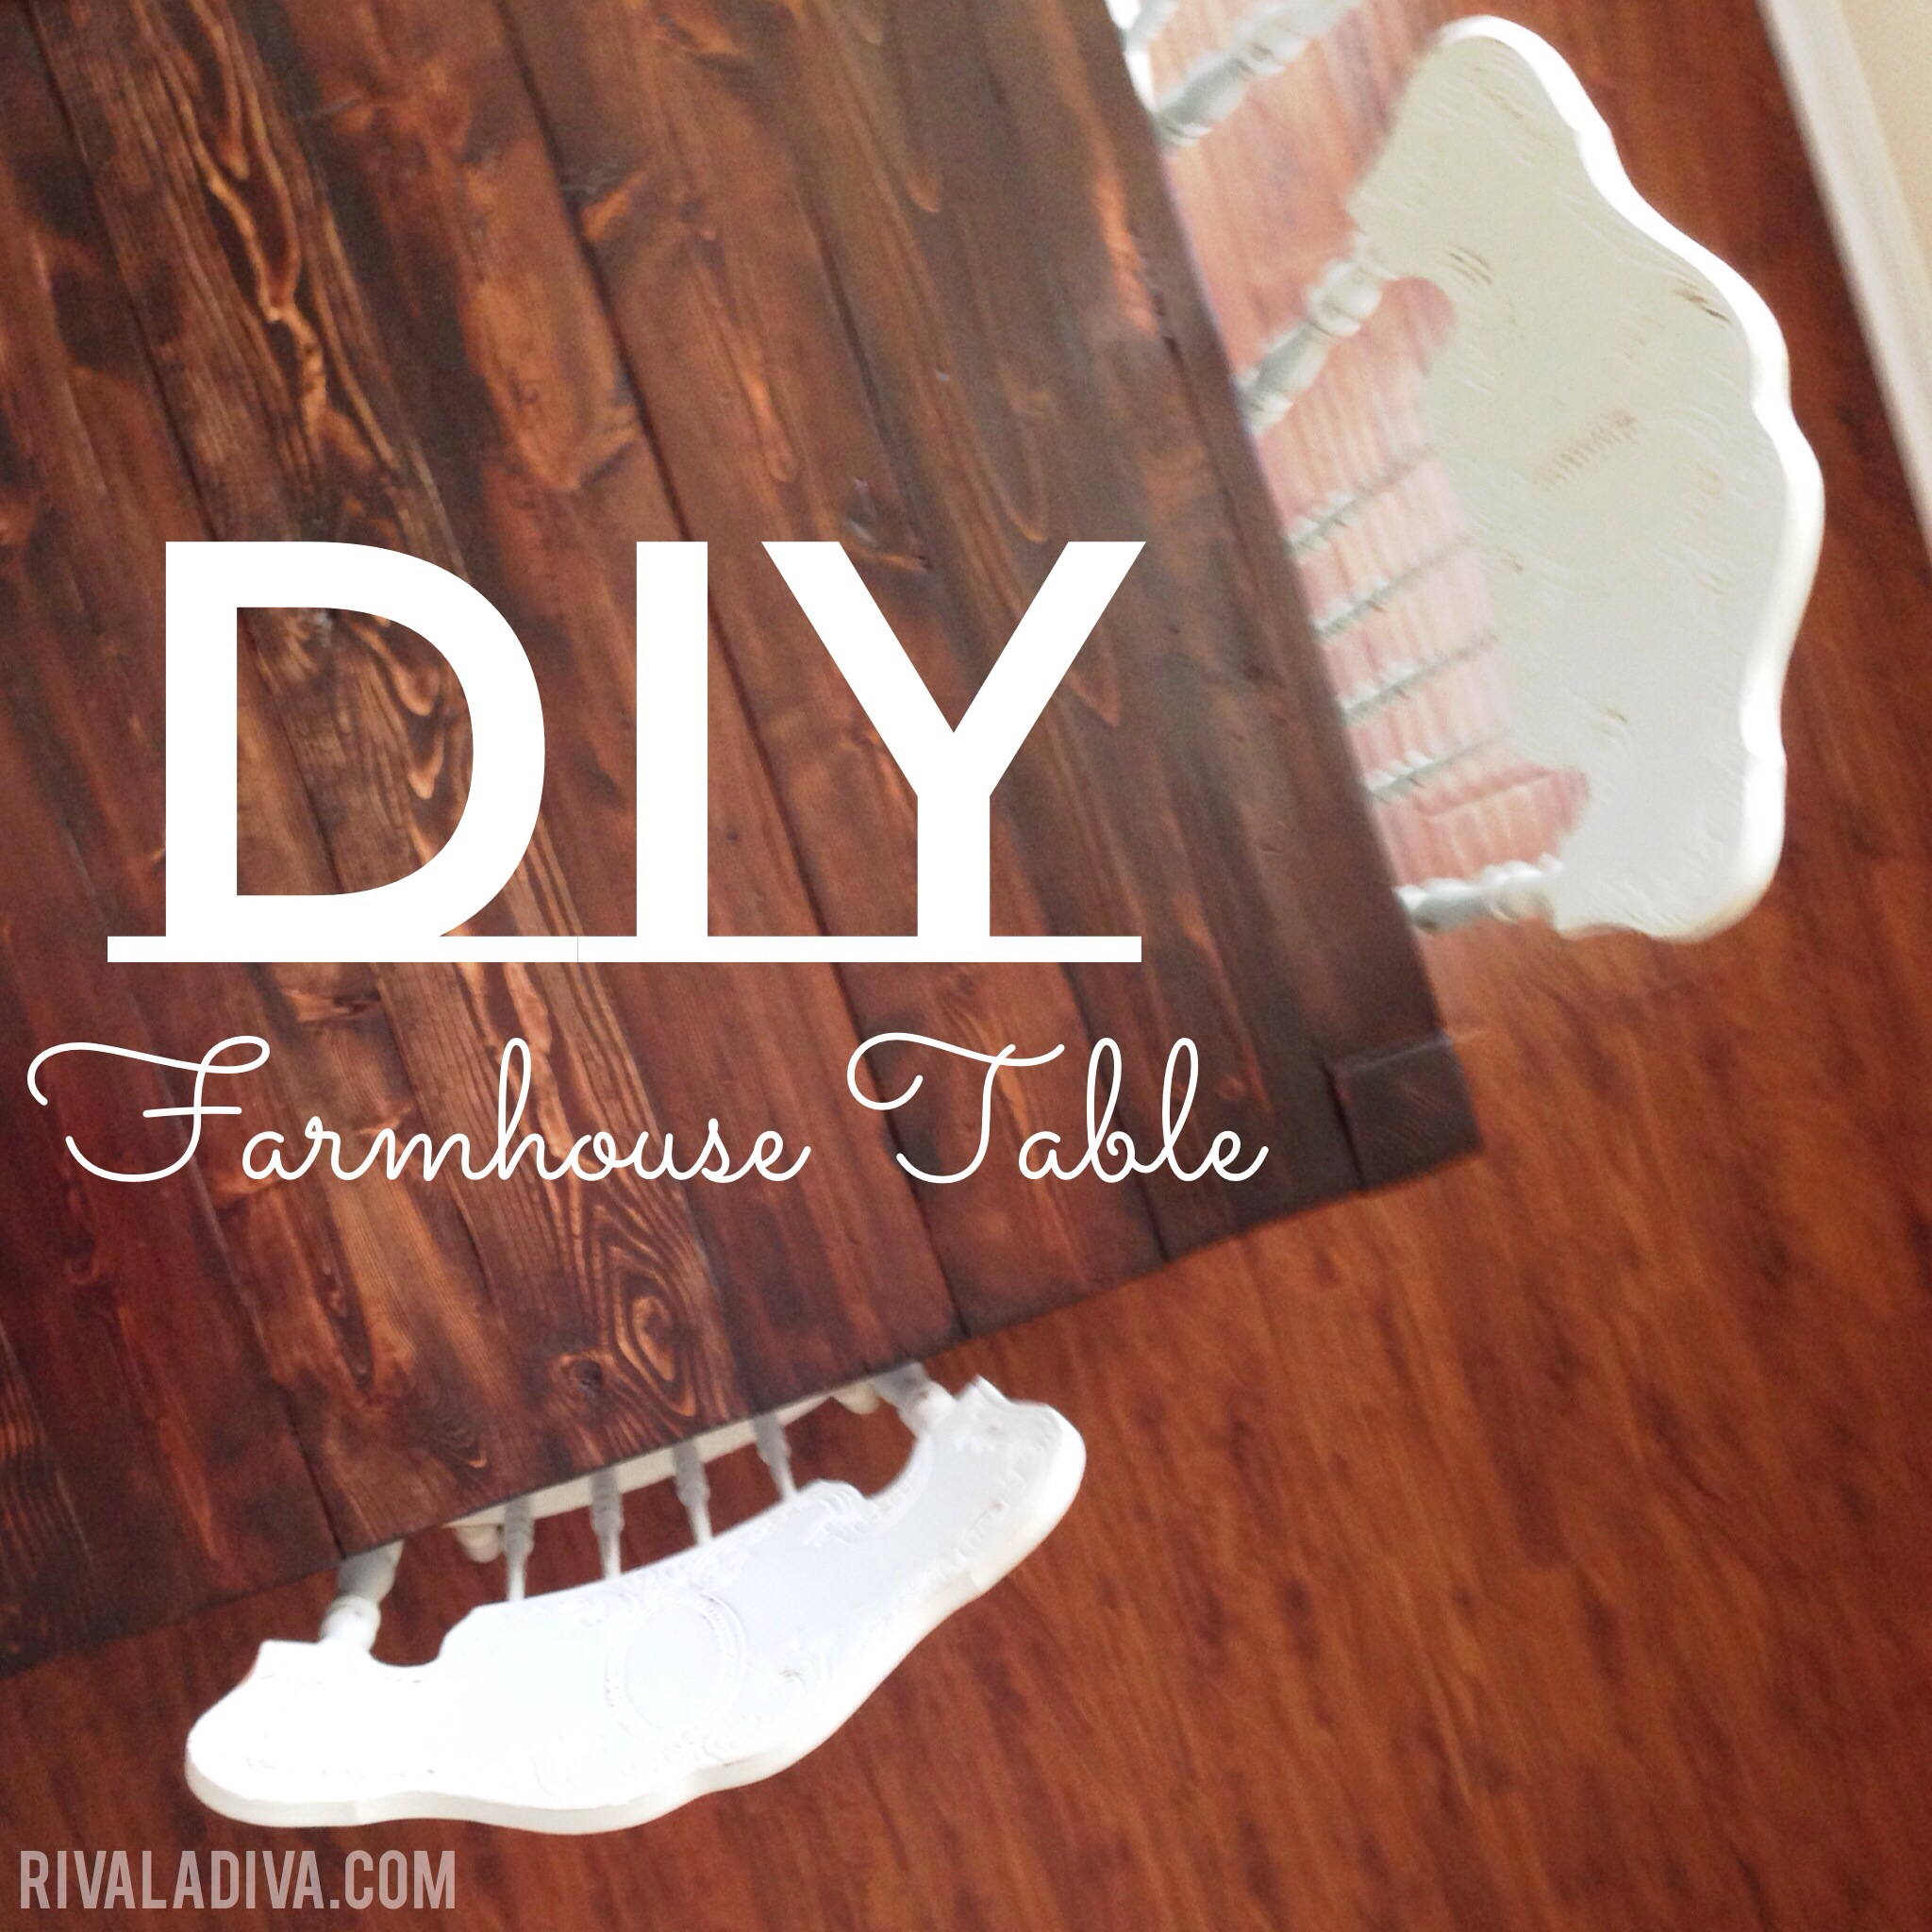 Restoration Hardware DIY